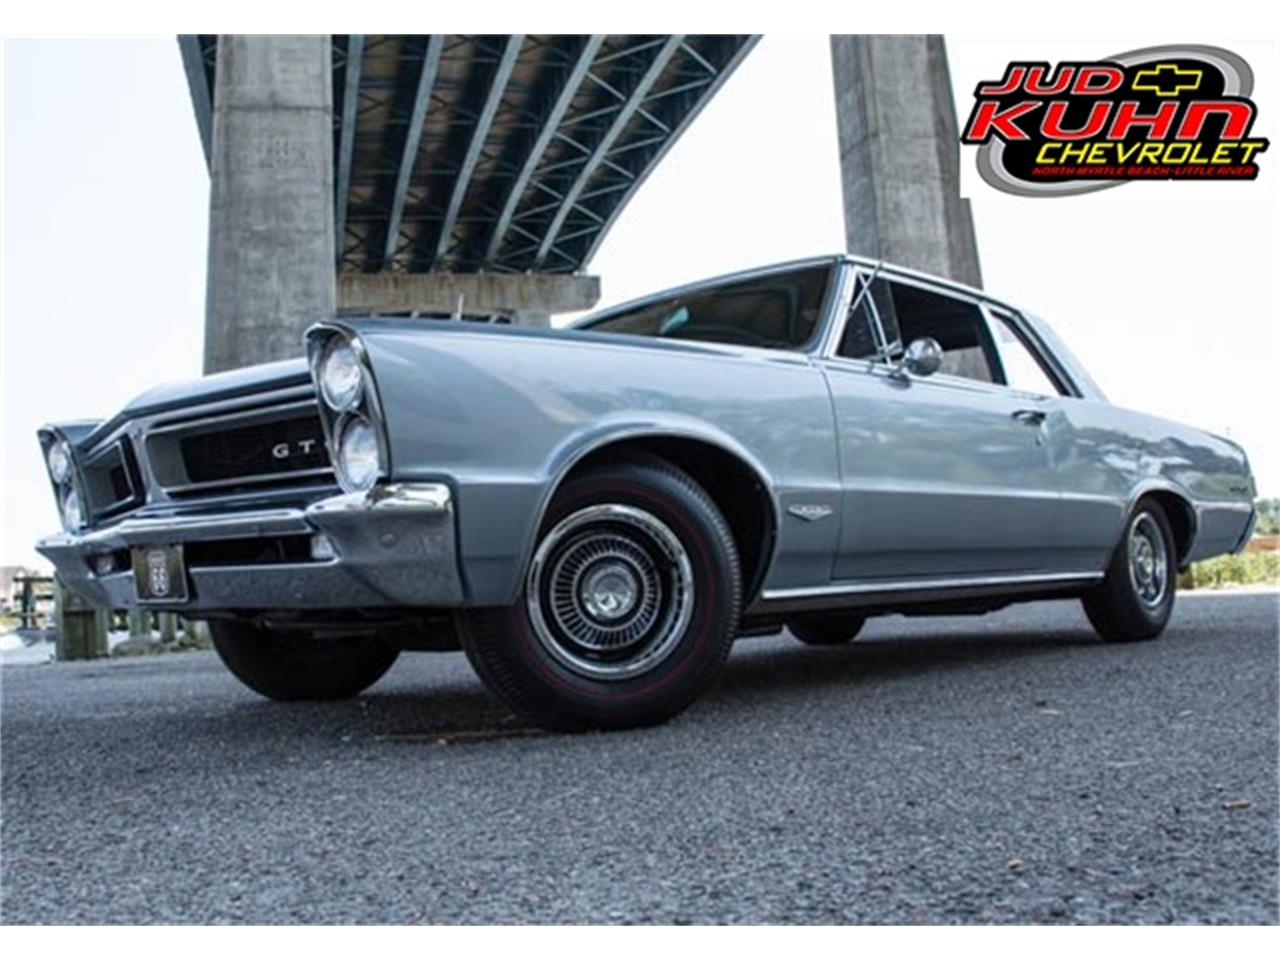 Large Picture of Classic '65 Pontiac GTO located in South Carolina - $42,500.00 Offered by Jud Kuhn Chevrolet - J909